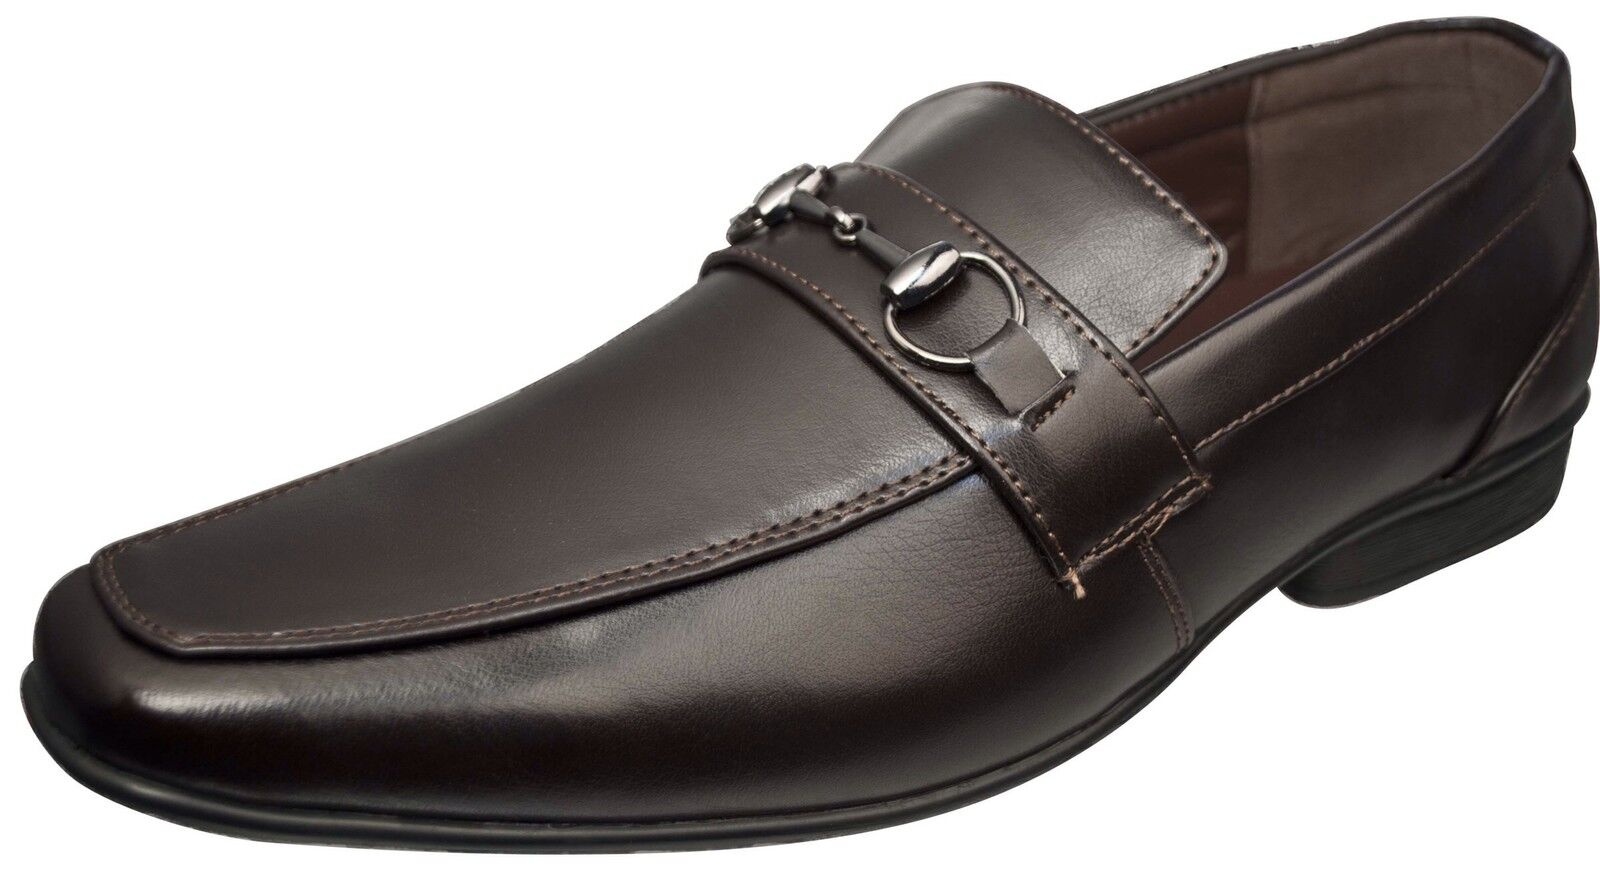 New Men Dress shoes Coffee w Comfort Padded Insoles Size 12